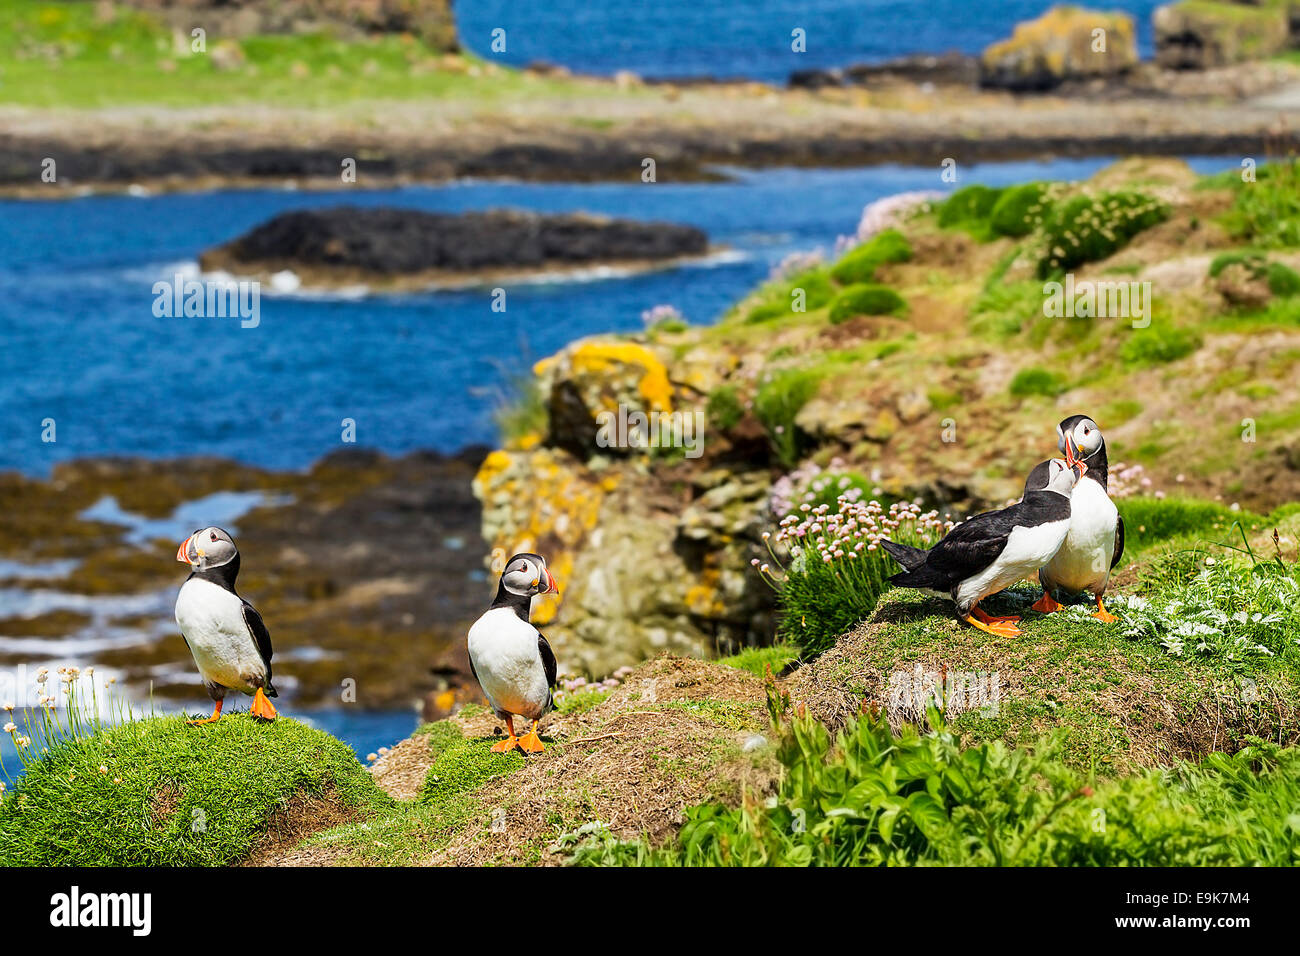 Atlantic puffin (Fratercula arctica) billing, a courtship display Stock Photo